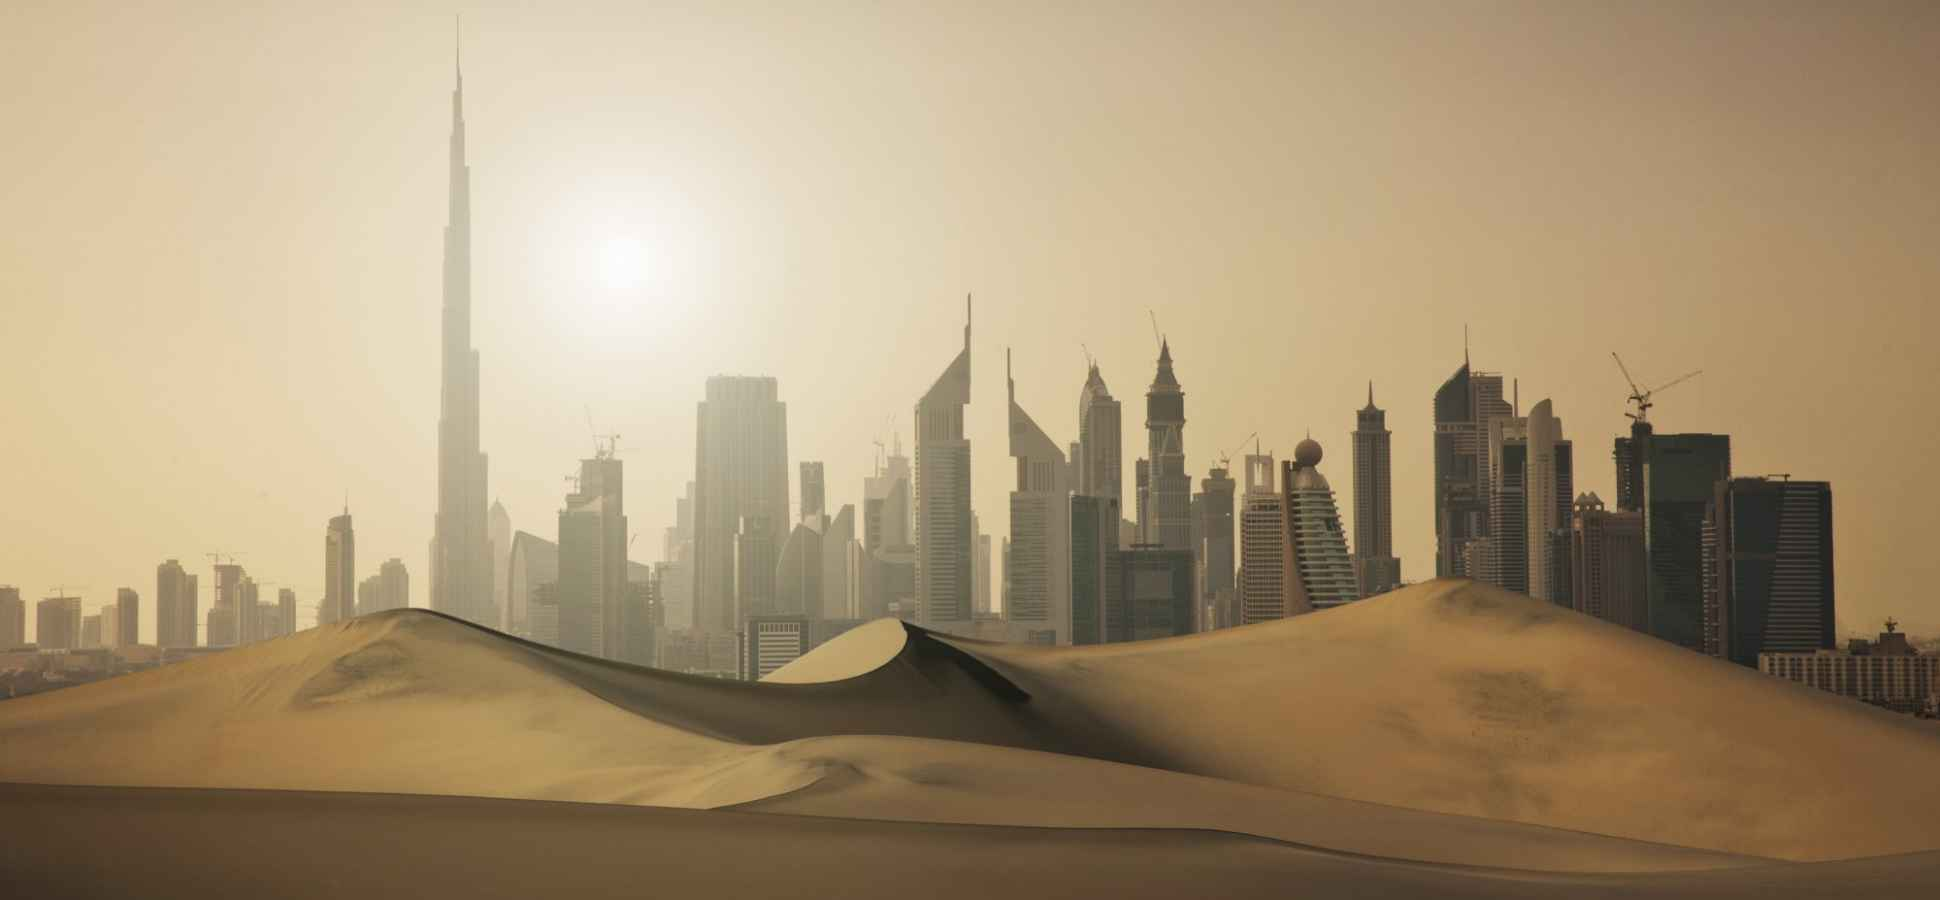 4 Things to Know About Starting Up in Dubai | Inc com